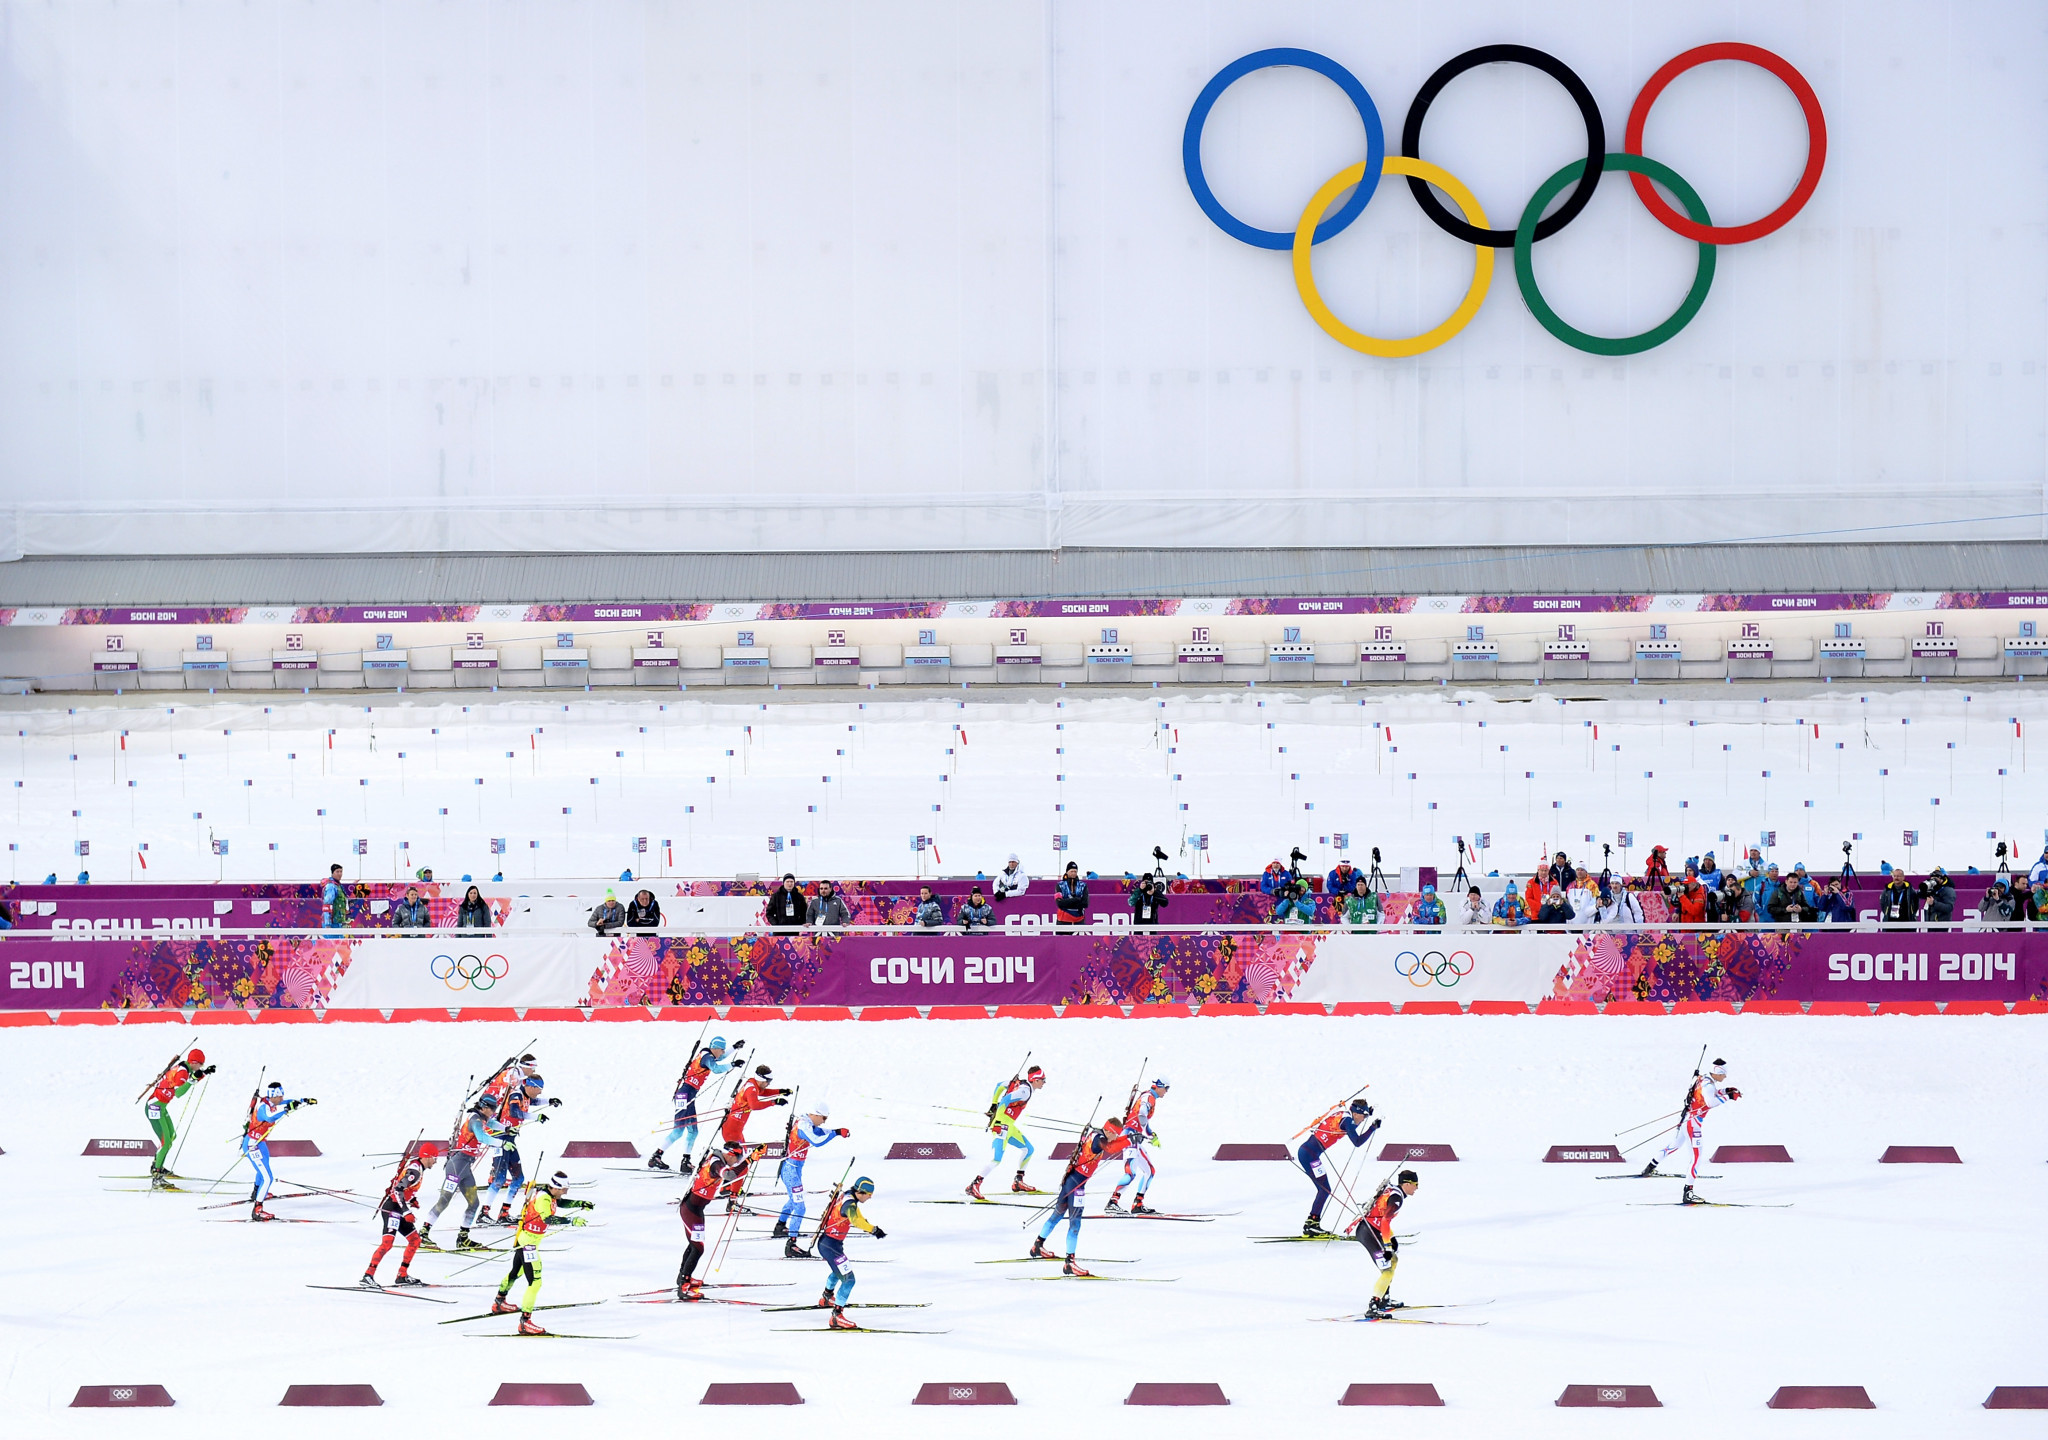 Climate reasons mean Sochi is unlikely to host the Winter Olympics again, the report says ©Getty Images